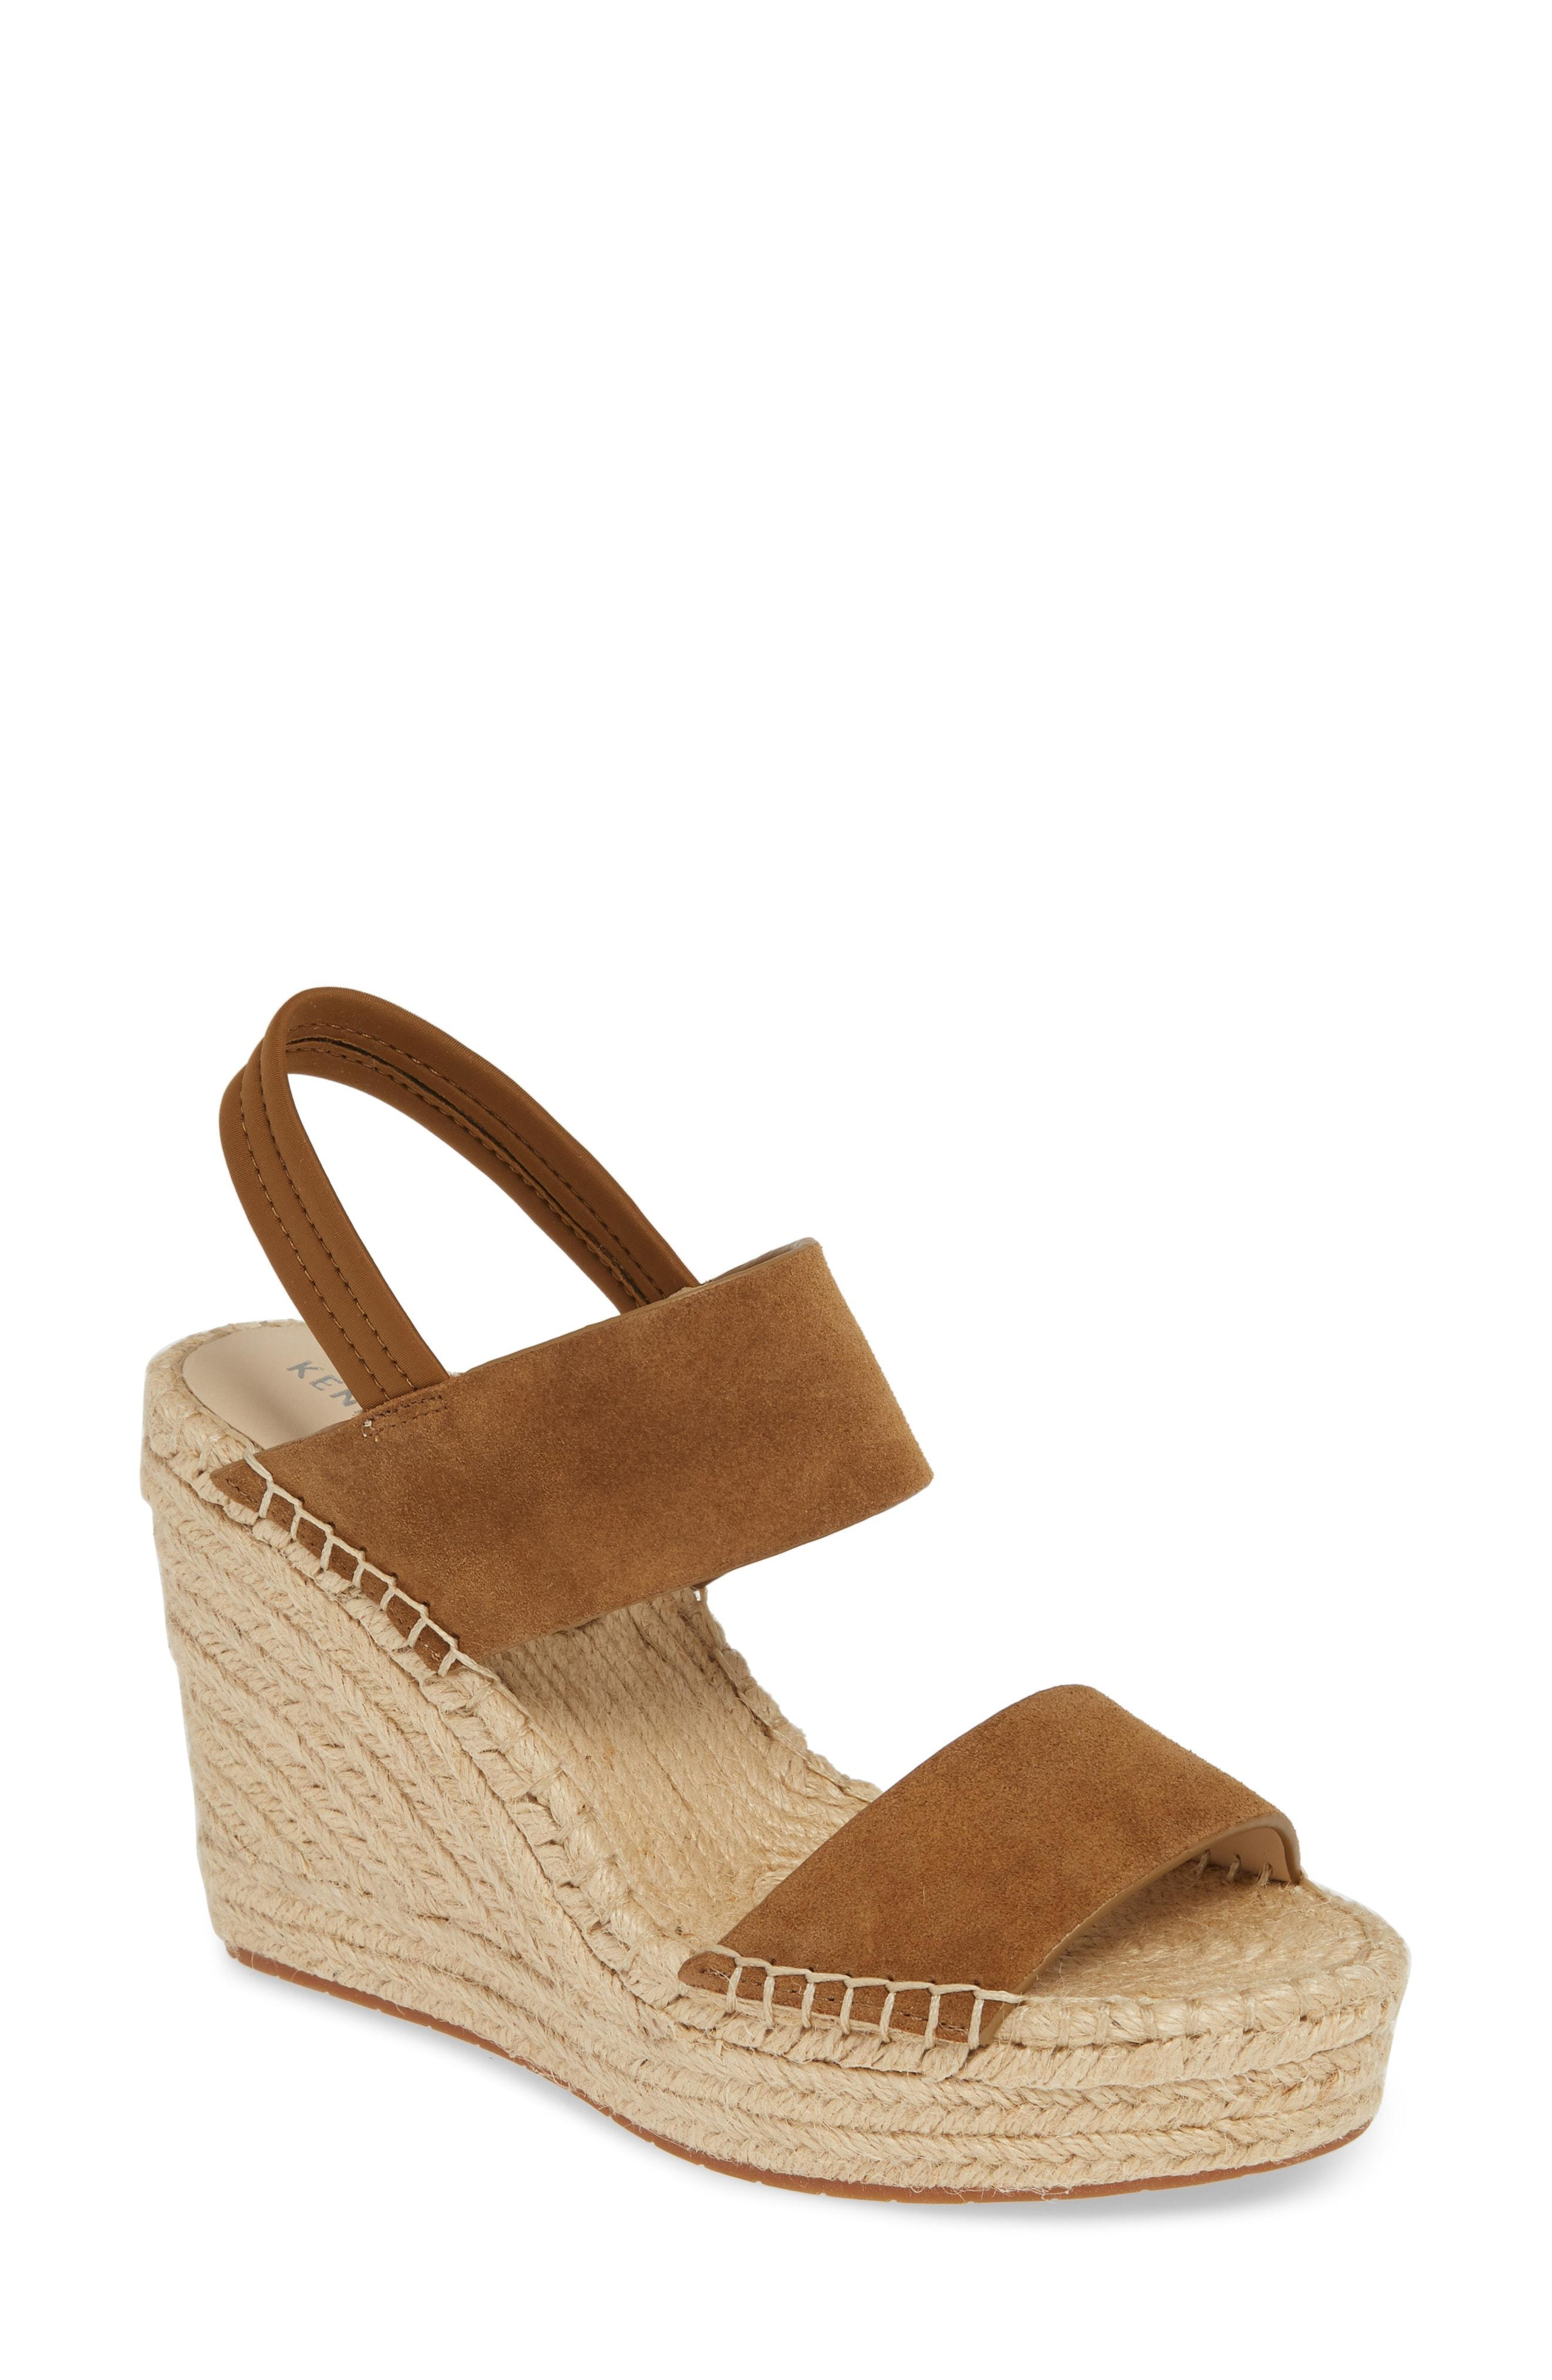 65f9478c0a8 Lyst - Kenneth Cole Olivia Simple Platform Wedge Sandal in Brown